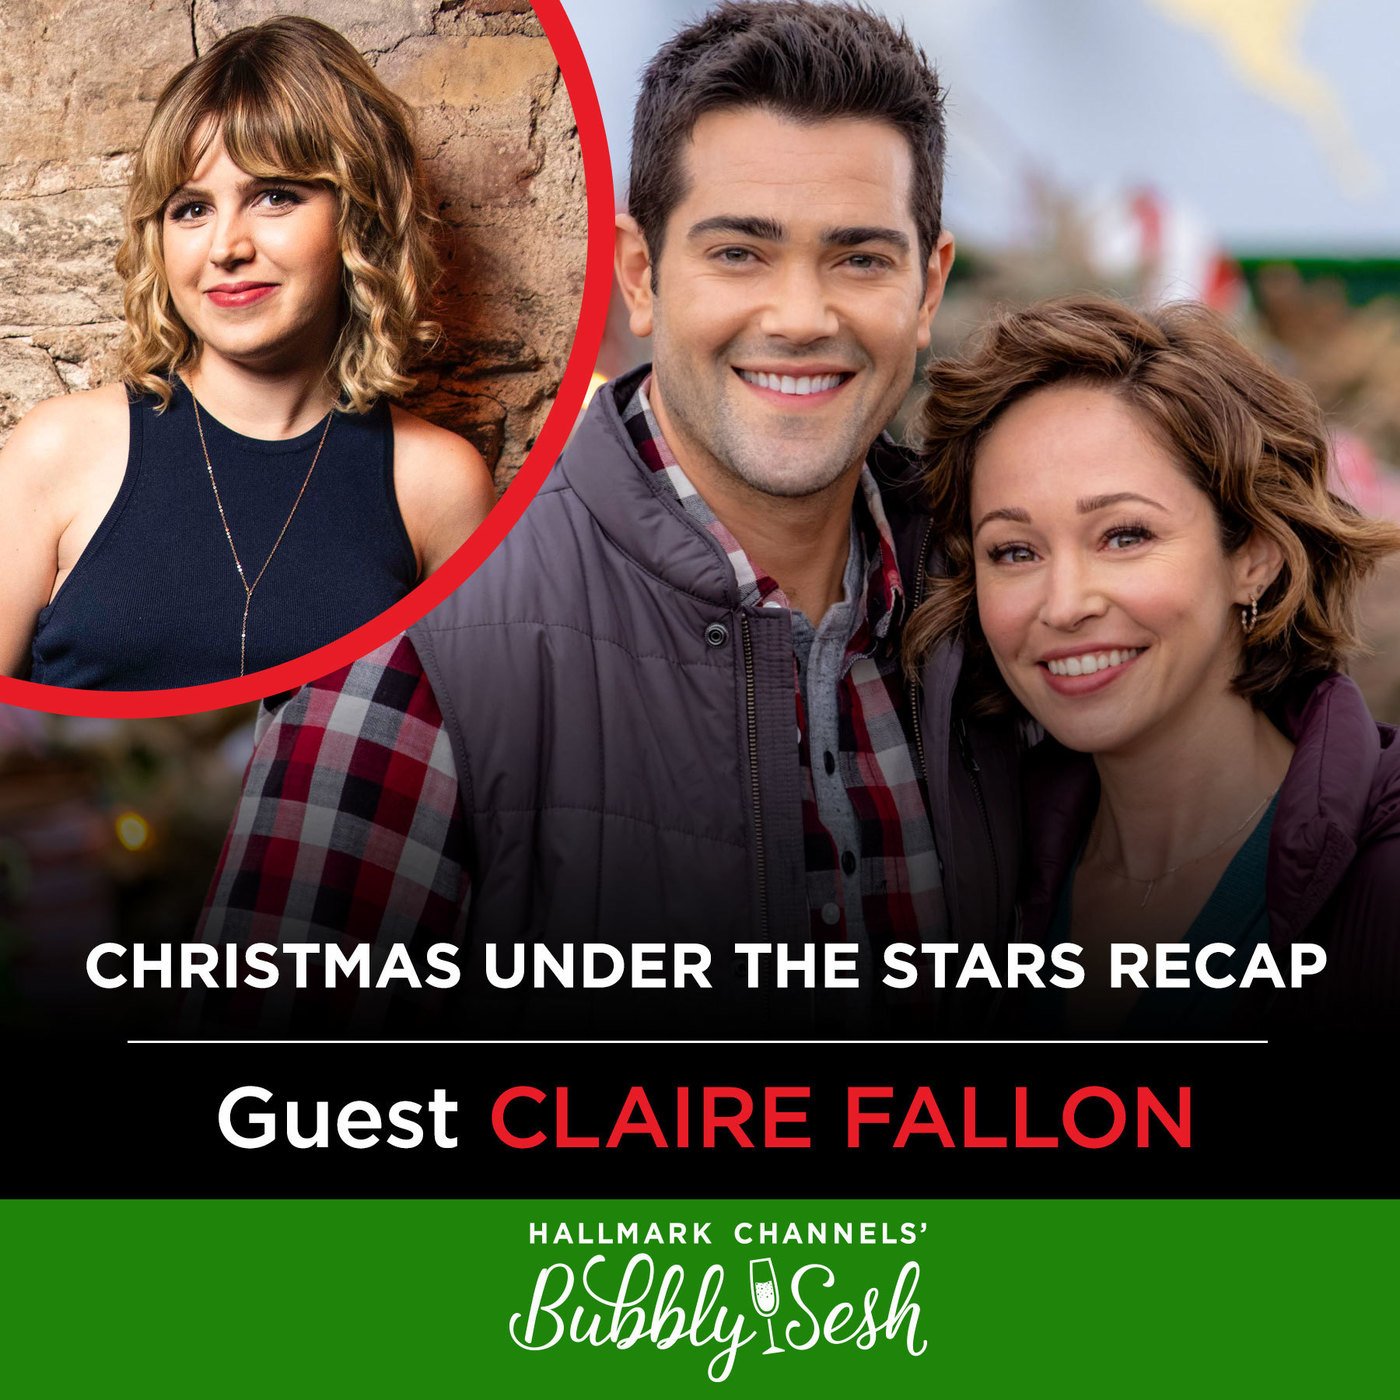 Christmas Under the Stars Recap with Claire Fallon